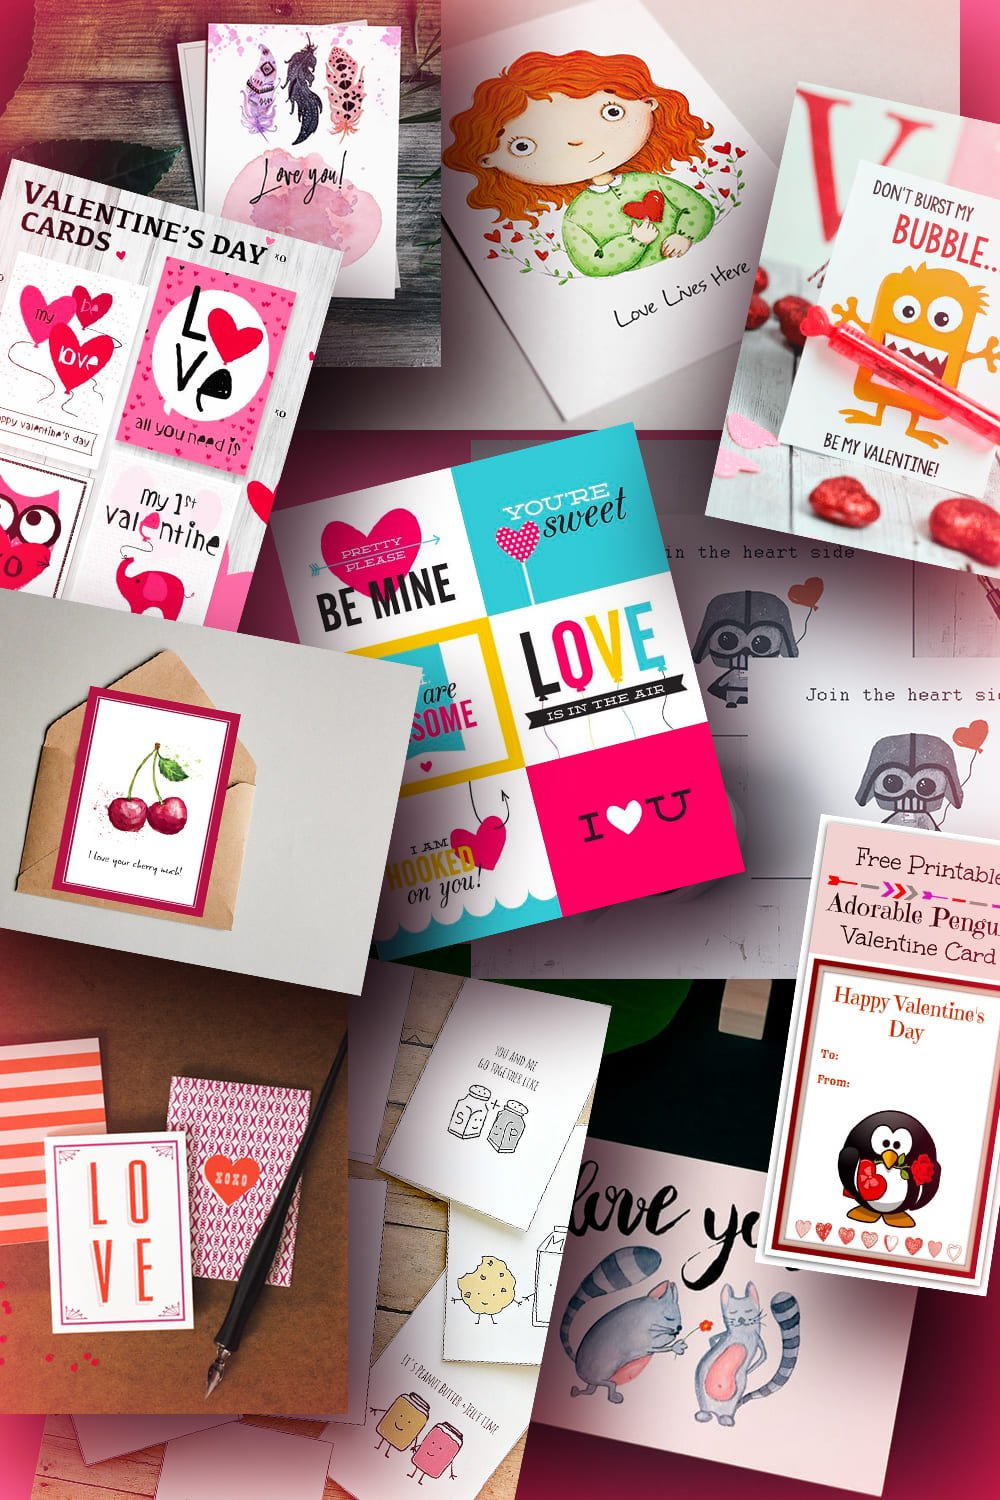 Valentines Day Cards. Pinterest Image.